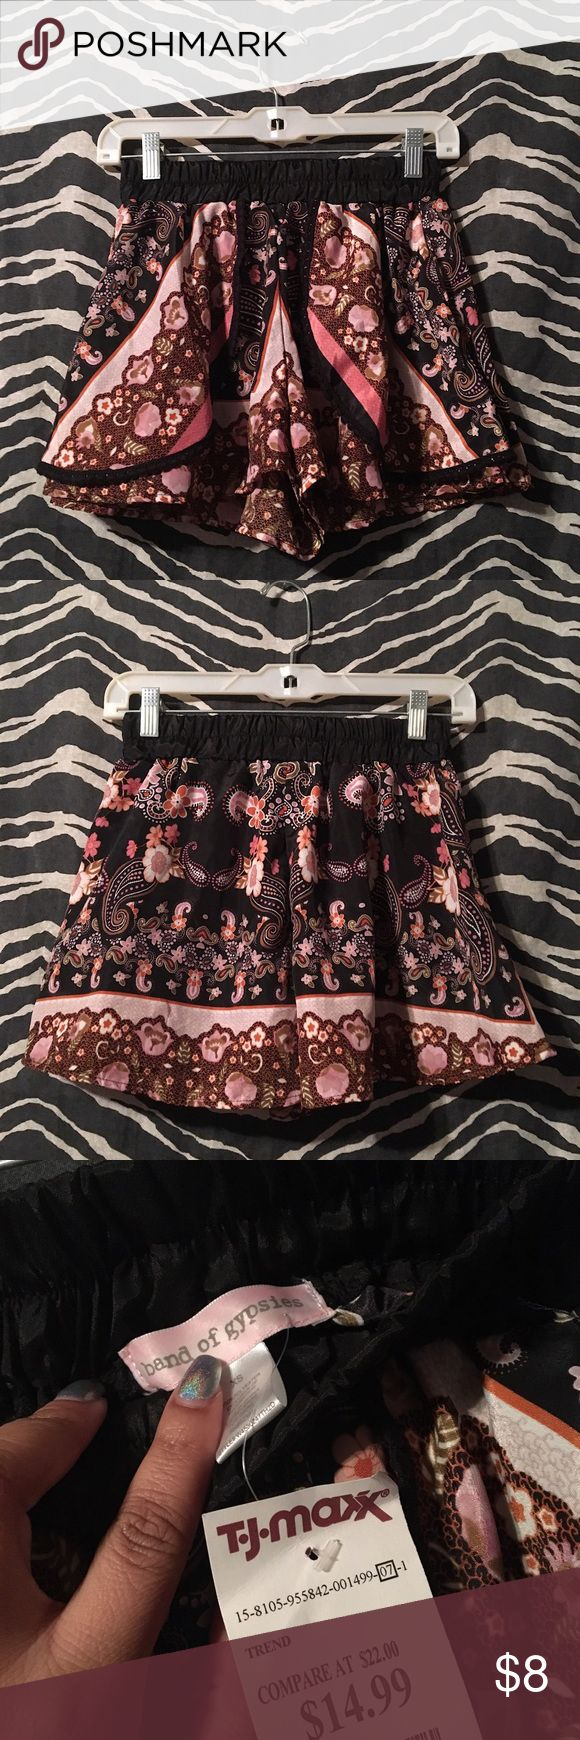 "Band of Gypsies Shorts. This is a brand new pair of shorts, they are 100% polyester, multicolored with an elastic waistband. I have never worn these myself because they're too small, so I can't say how they'd fit. Thanks for looking!   🔹Please feel free to ask questions or make an offer using the ""offer"" button🔹 🚨 If I don't already have a ""model photo"" I am unable to provide one.🚨 💌 I ship same or next day unless stated otherwise💌 ☺️Thank you!☺️ Band of Gypsies Shorts"